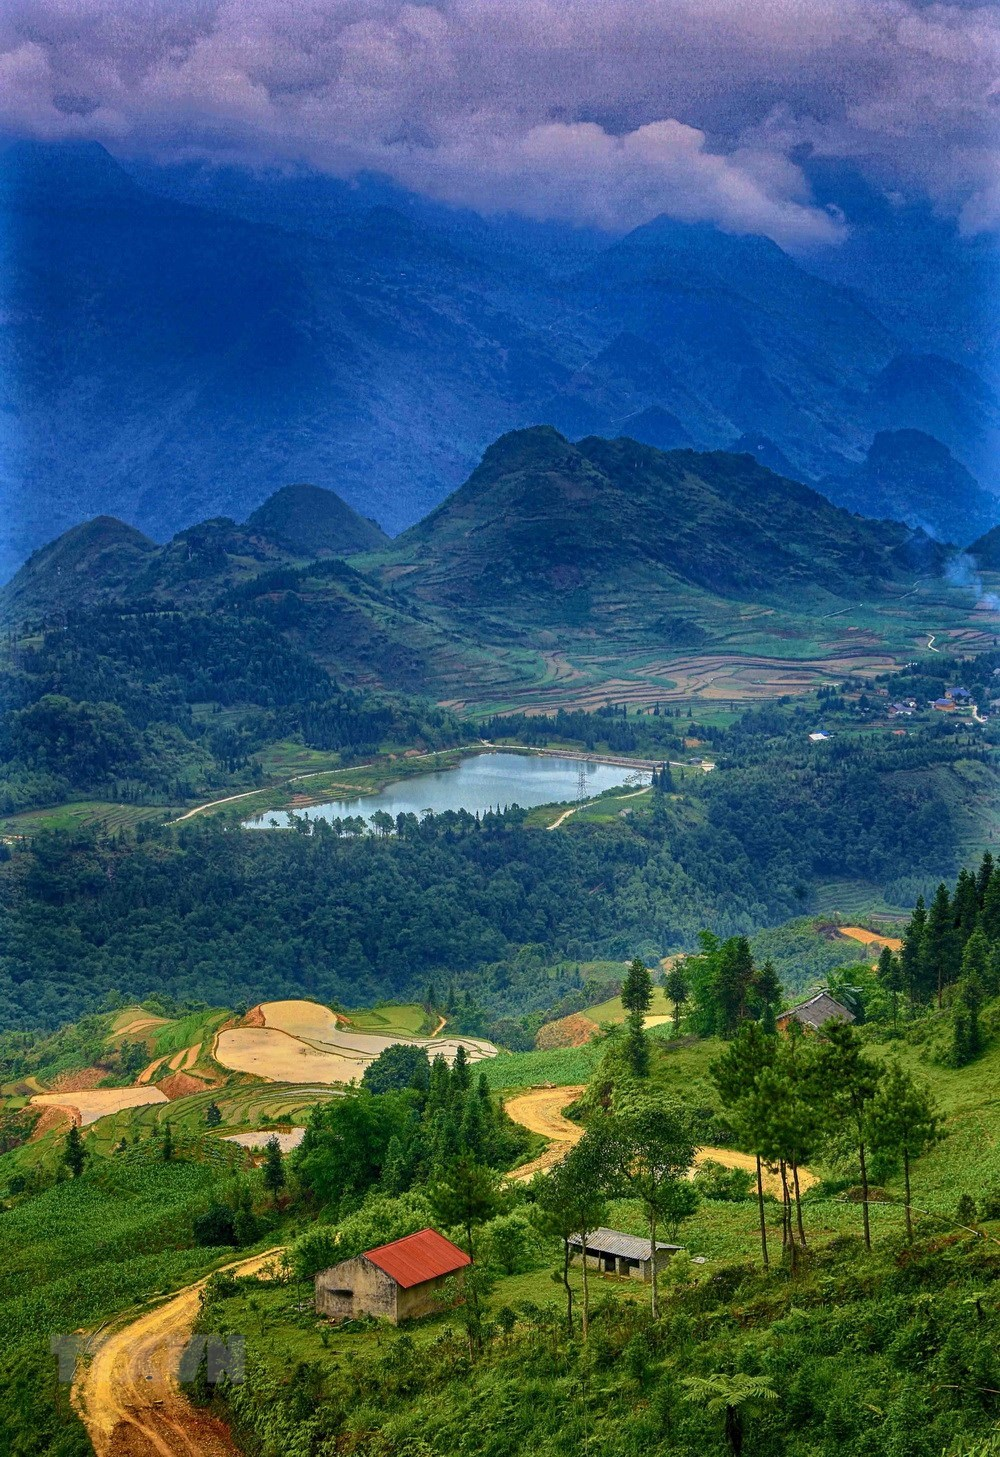 Stunning view of Ha Giang's natural landscapes in summer, travel news, Vietnam guide, Vietnam airlines, Vietnam tour, tour Vietnam, Hanoi, ho chi minh city, Saigon, travelling to Vietnam, Vietnam travelling, Vietnam travel, vn news